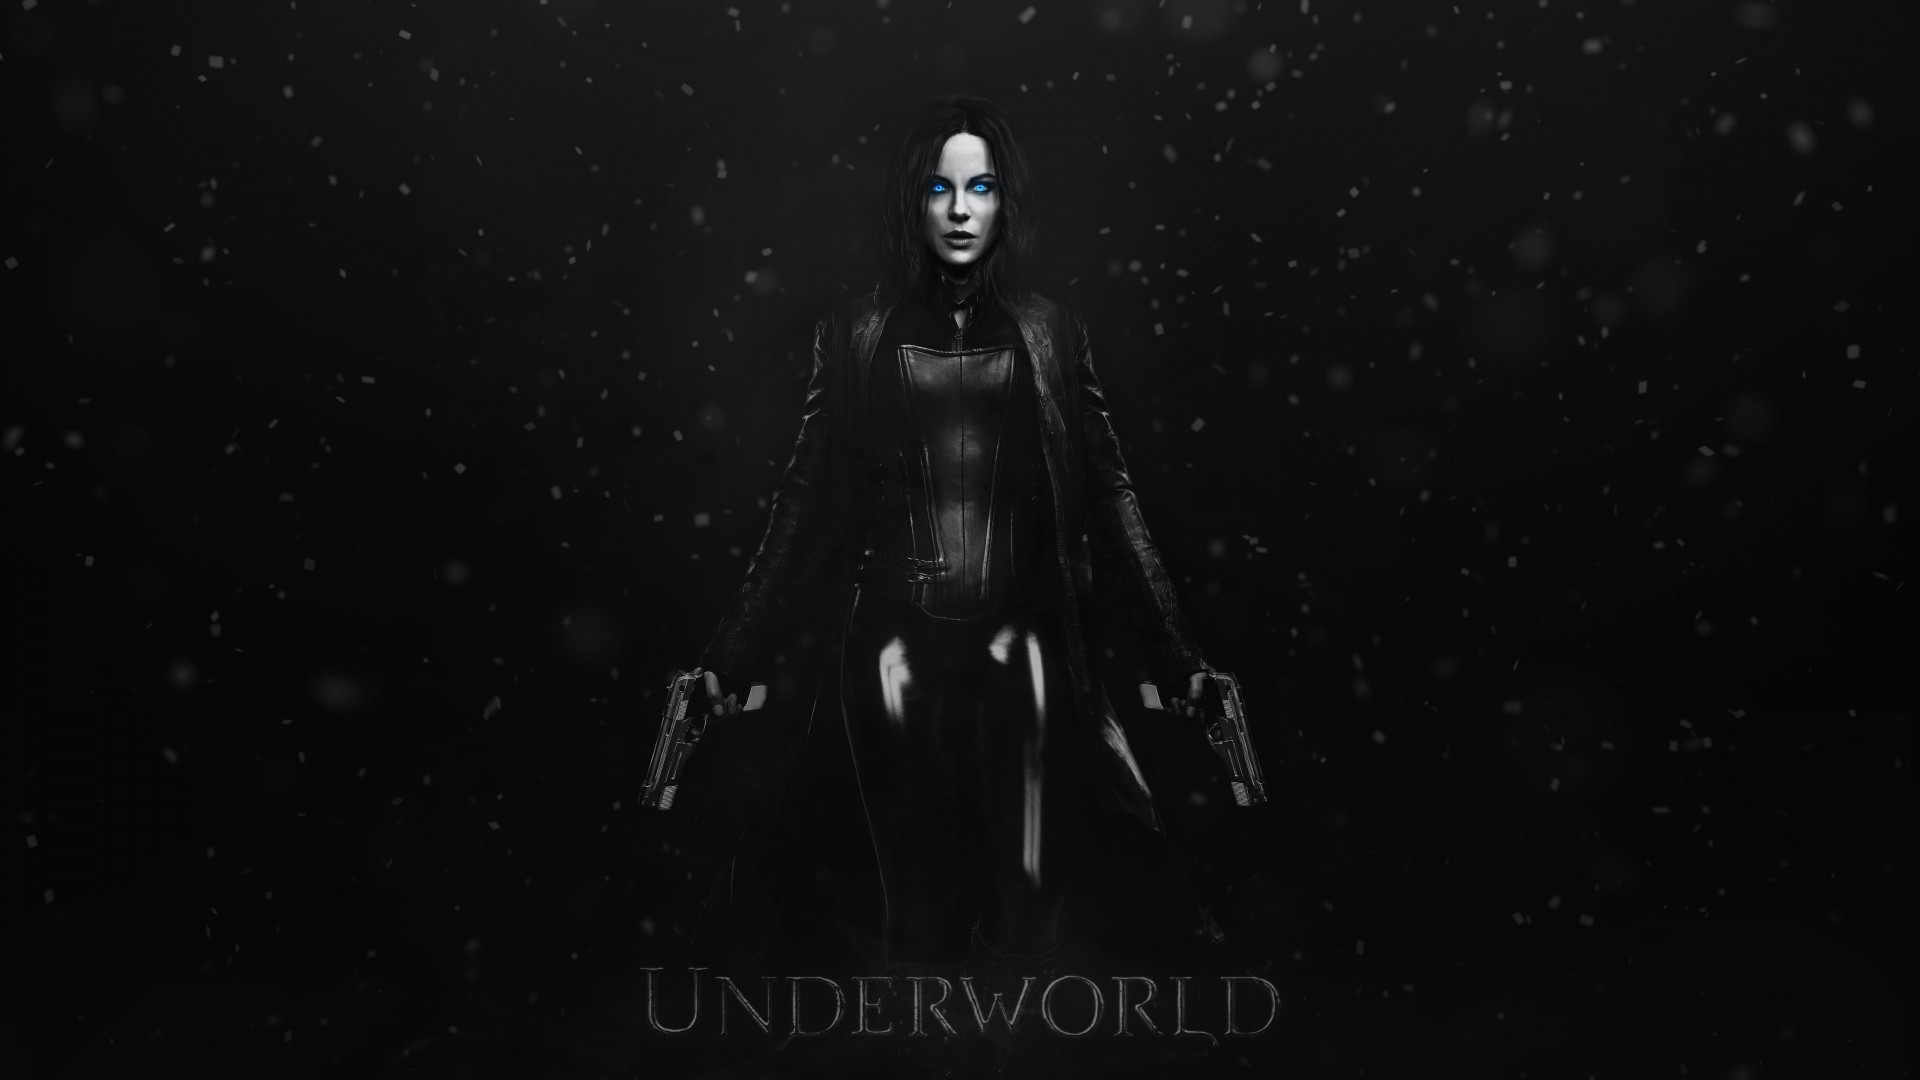 Selene From Underworld wallpaper 1920x1080